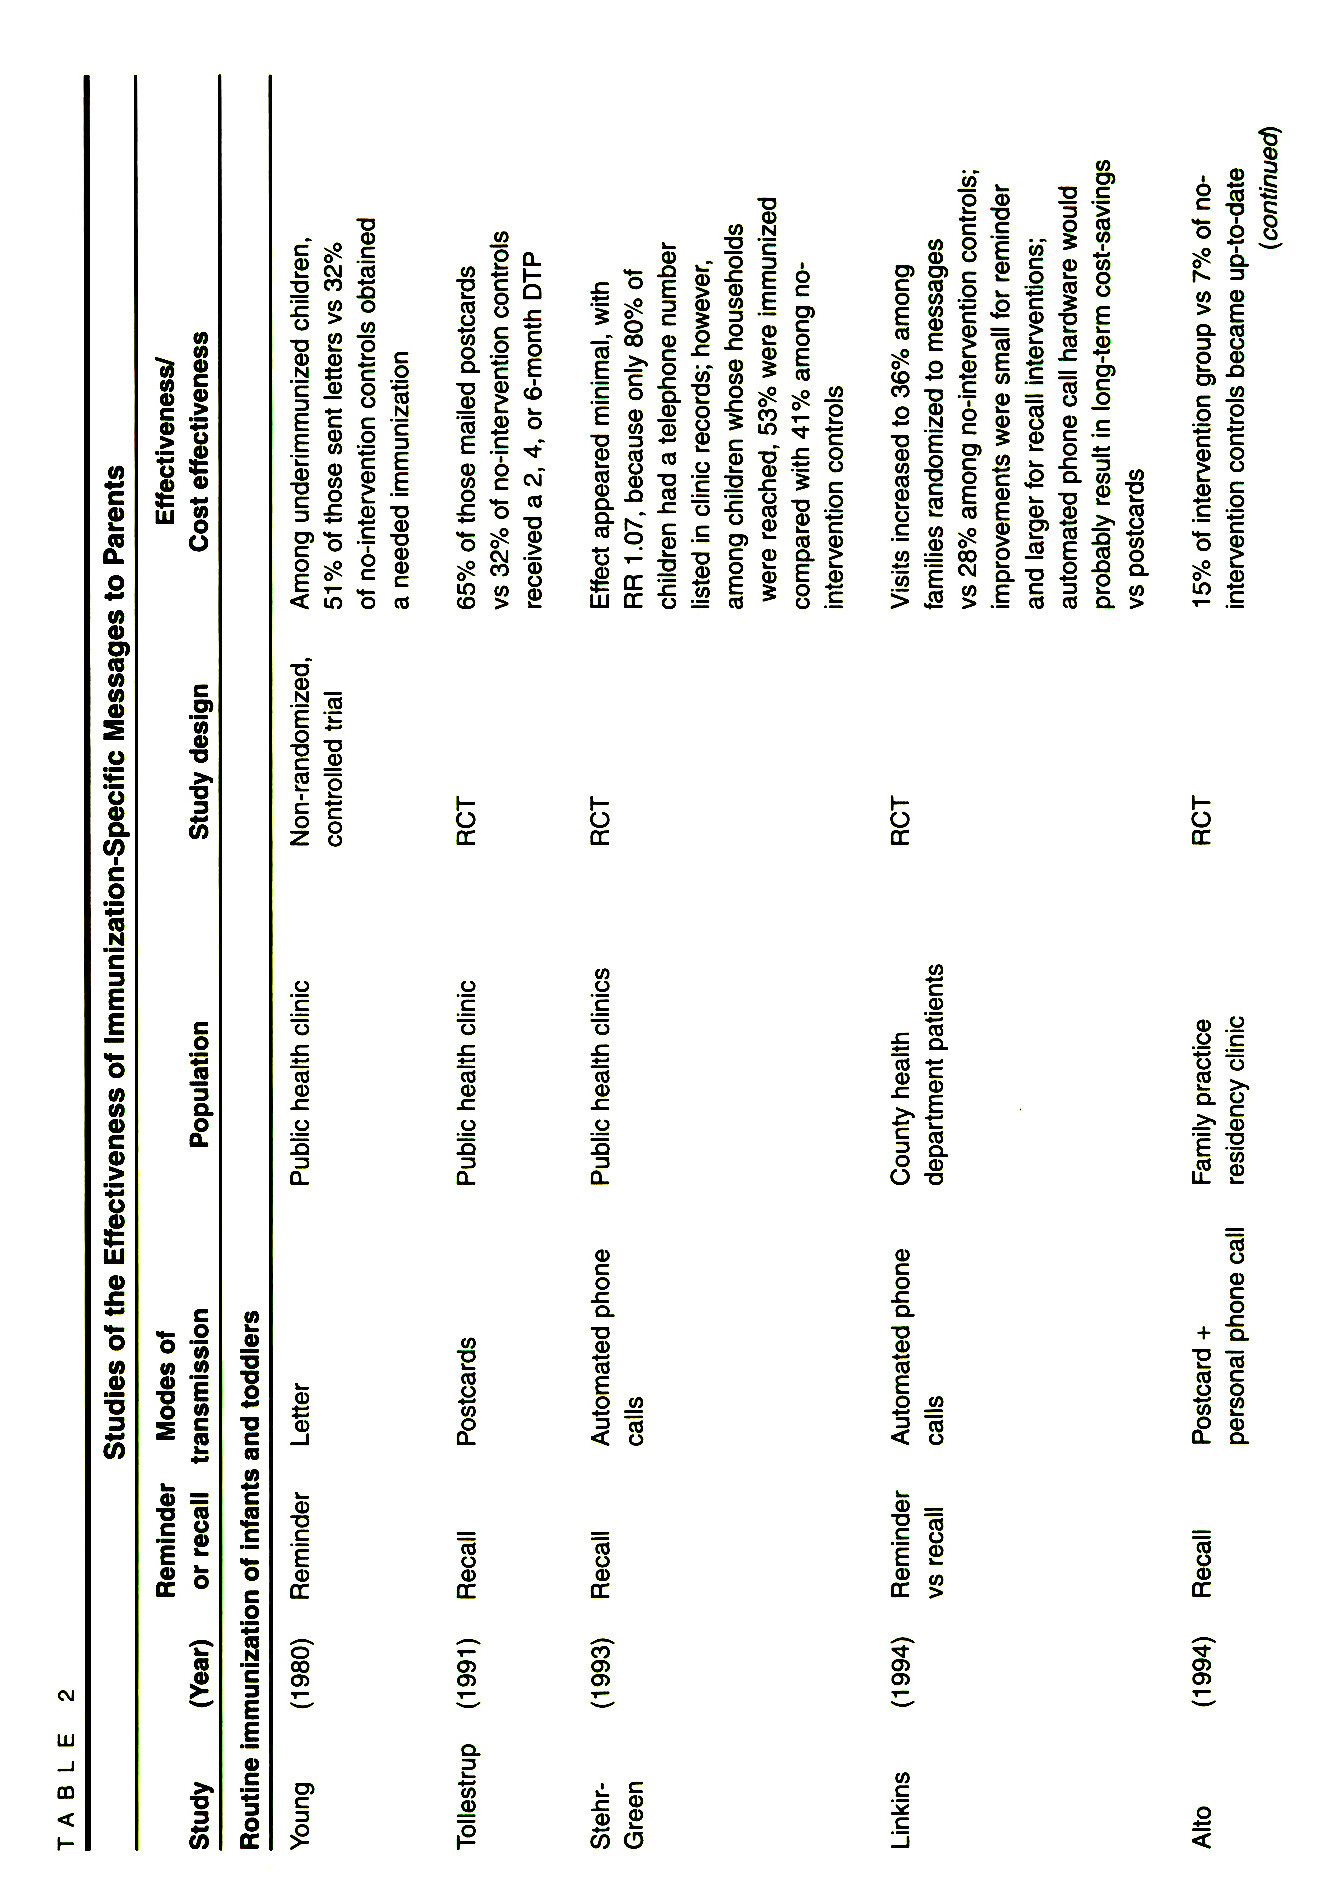 TABLE 2Studies of the Effectiveness on Immunizaation-Specific Messages to Parents